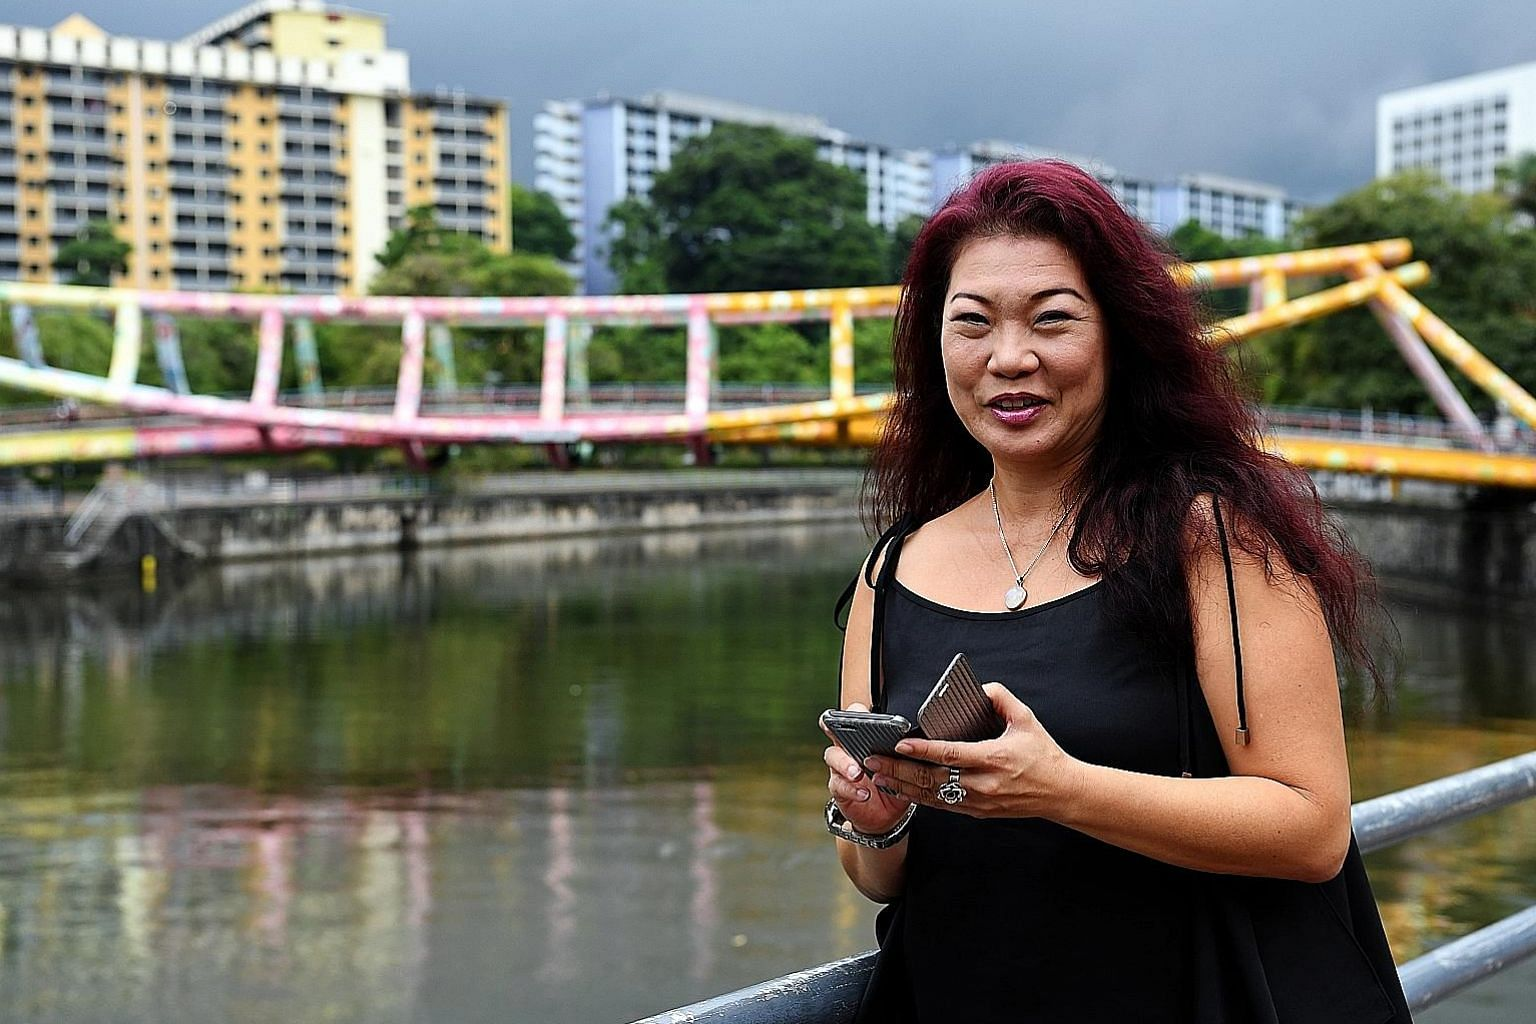 Theatre practitioner Zelda Tatiana Ng, 49, terminated her $70-a-month data plan three years ago, and now relies solely on Wi-Fi to access apps. Some friends do get frustrated when she does not see or reply to their messages, admits Ms Ng, who is sing